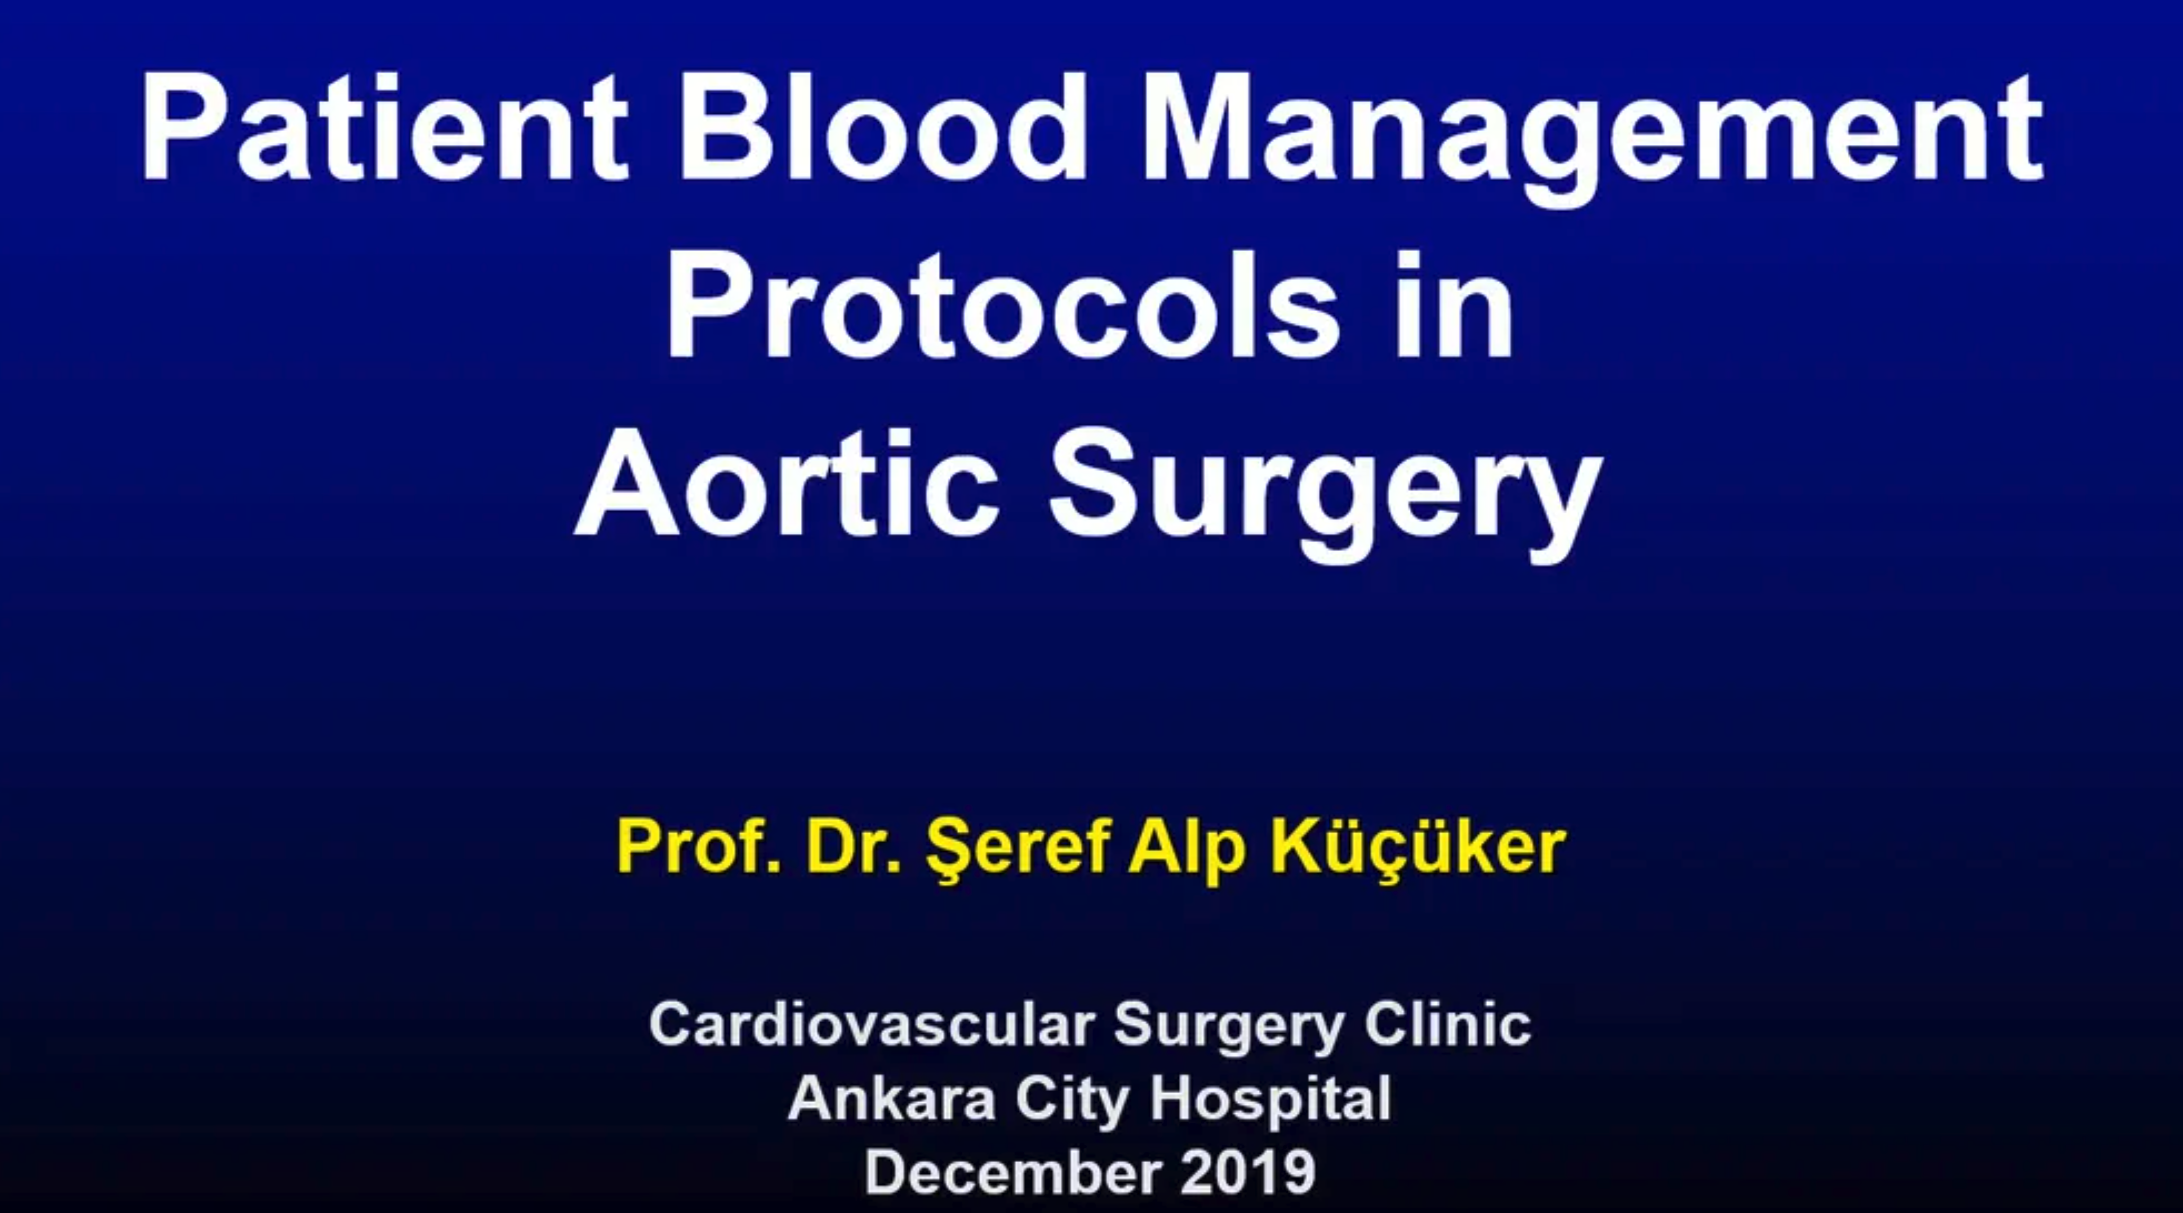 13_Kucuker_Patient Blood Management - Protocols in Aortic Surgery